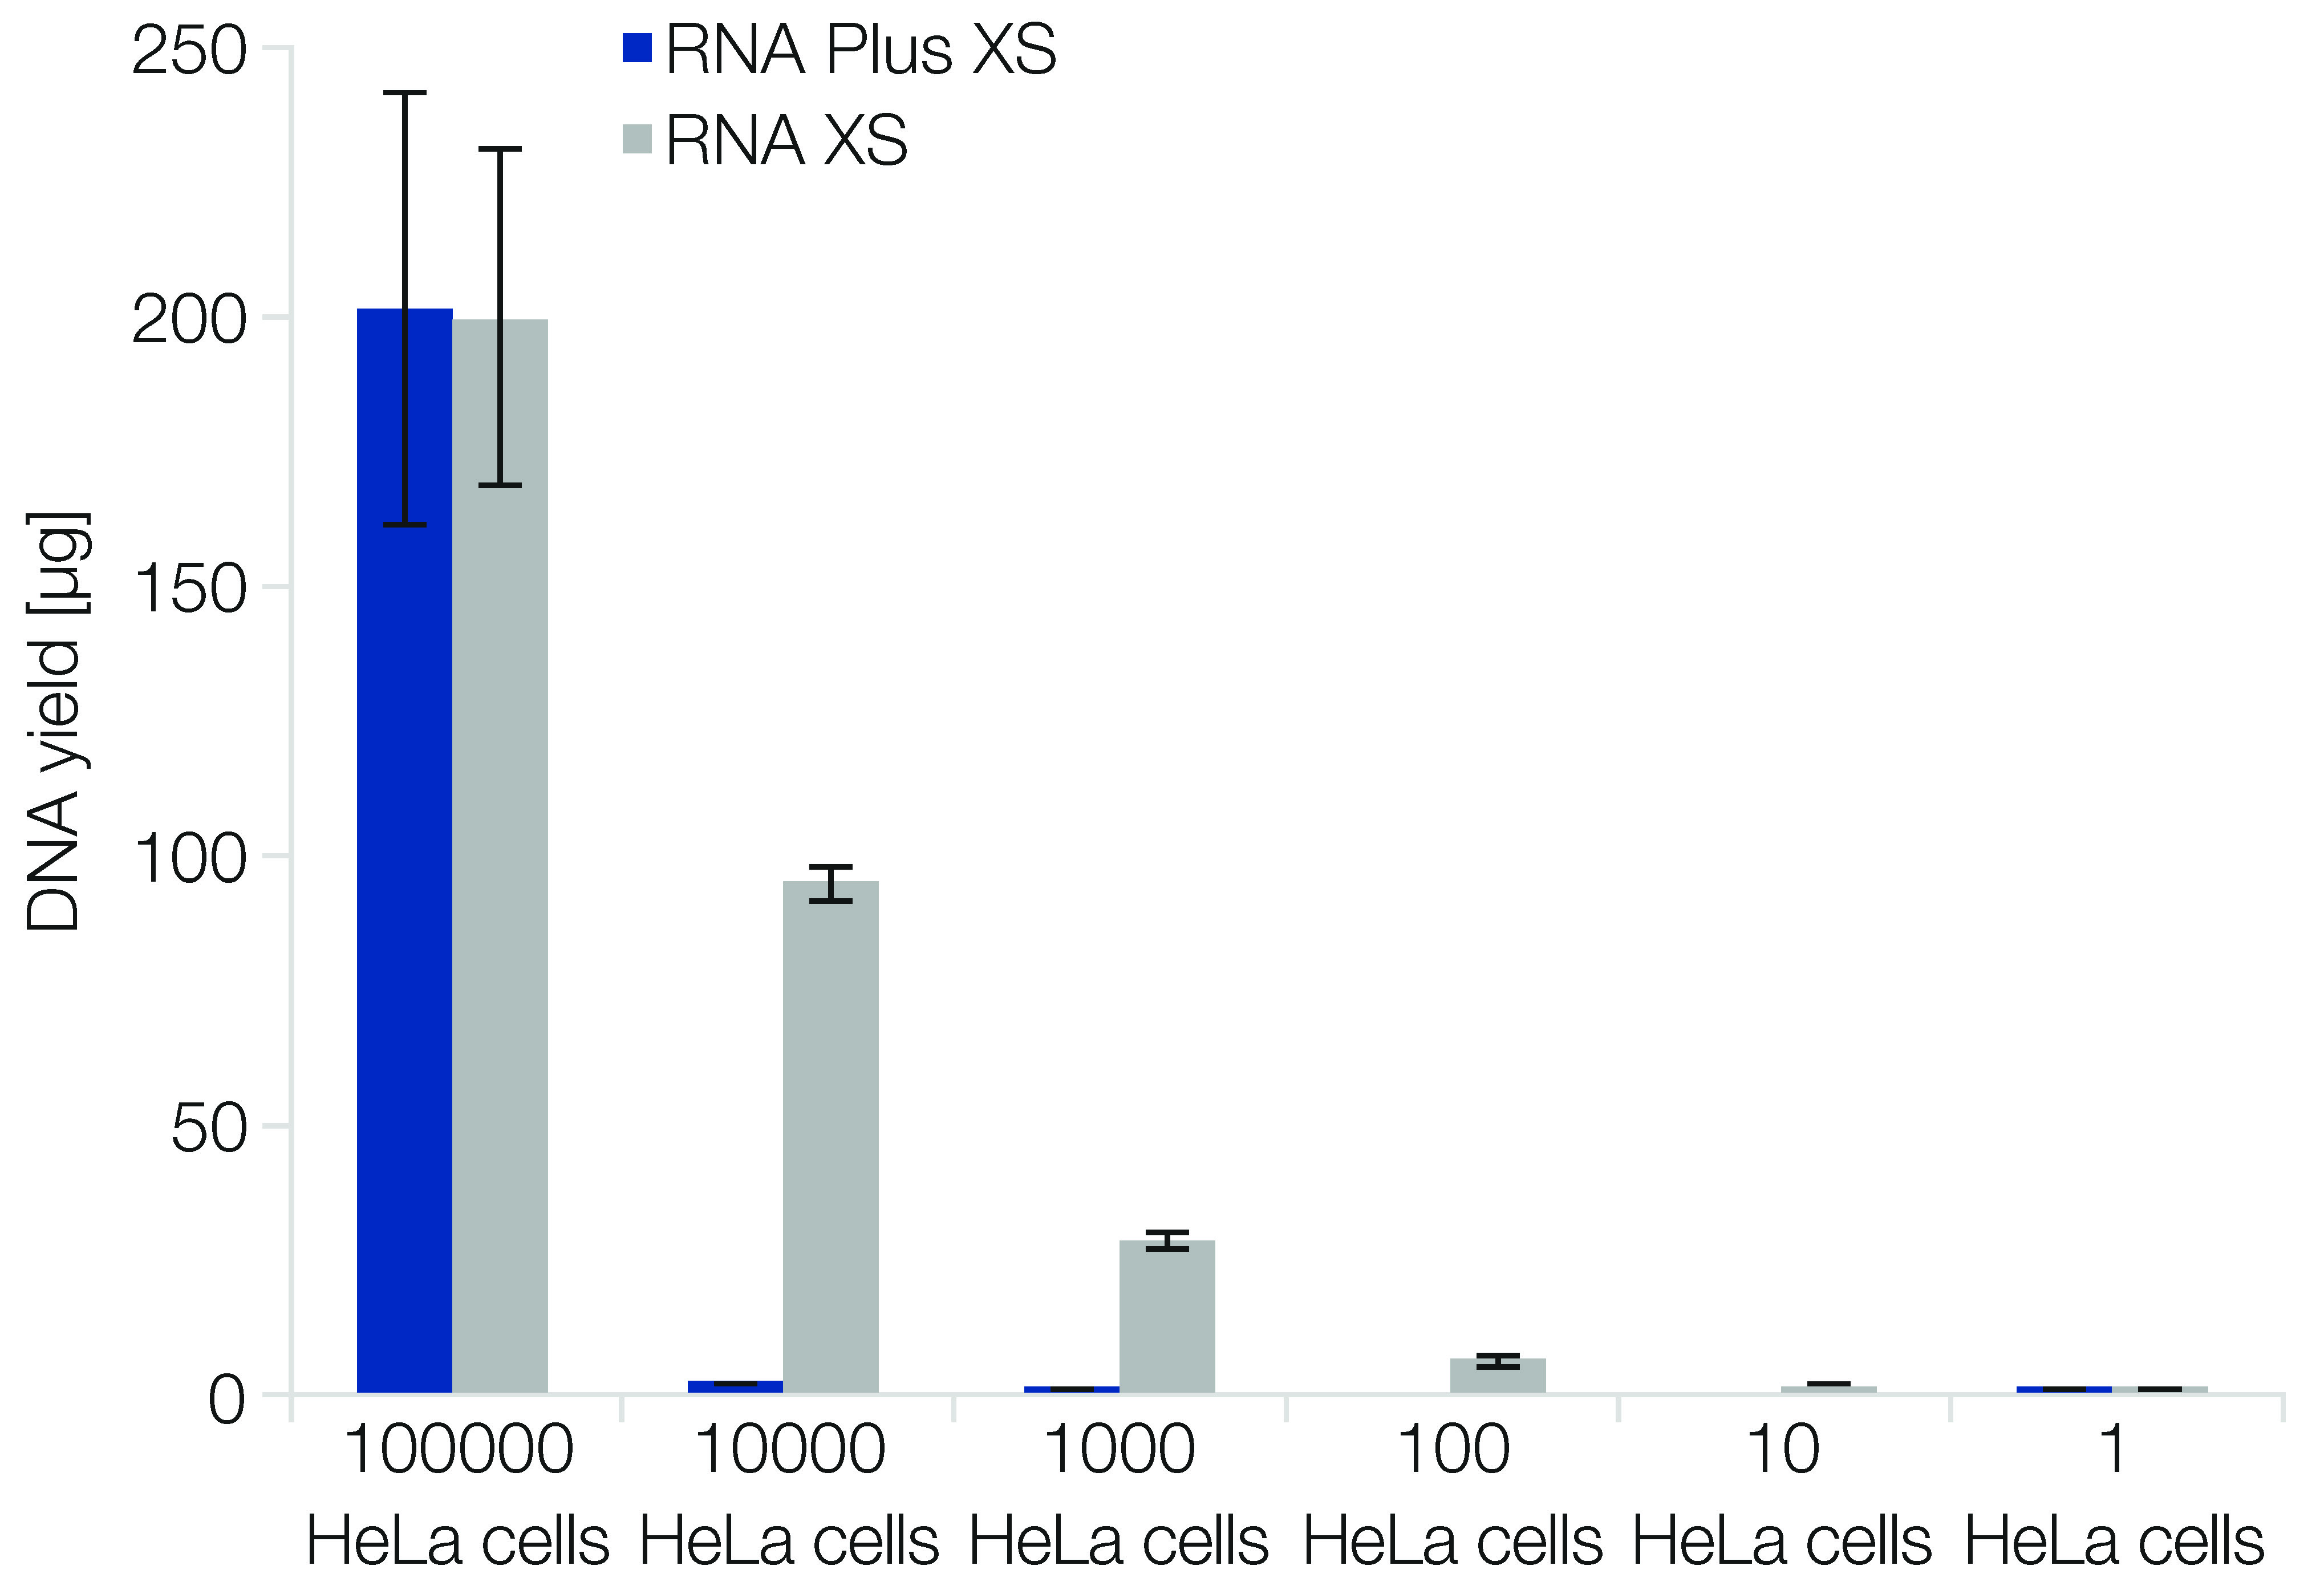 Efficient removal of genomic DNA contamination with NucleoSpin RNA Plus XS